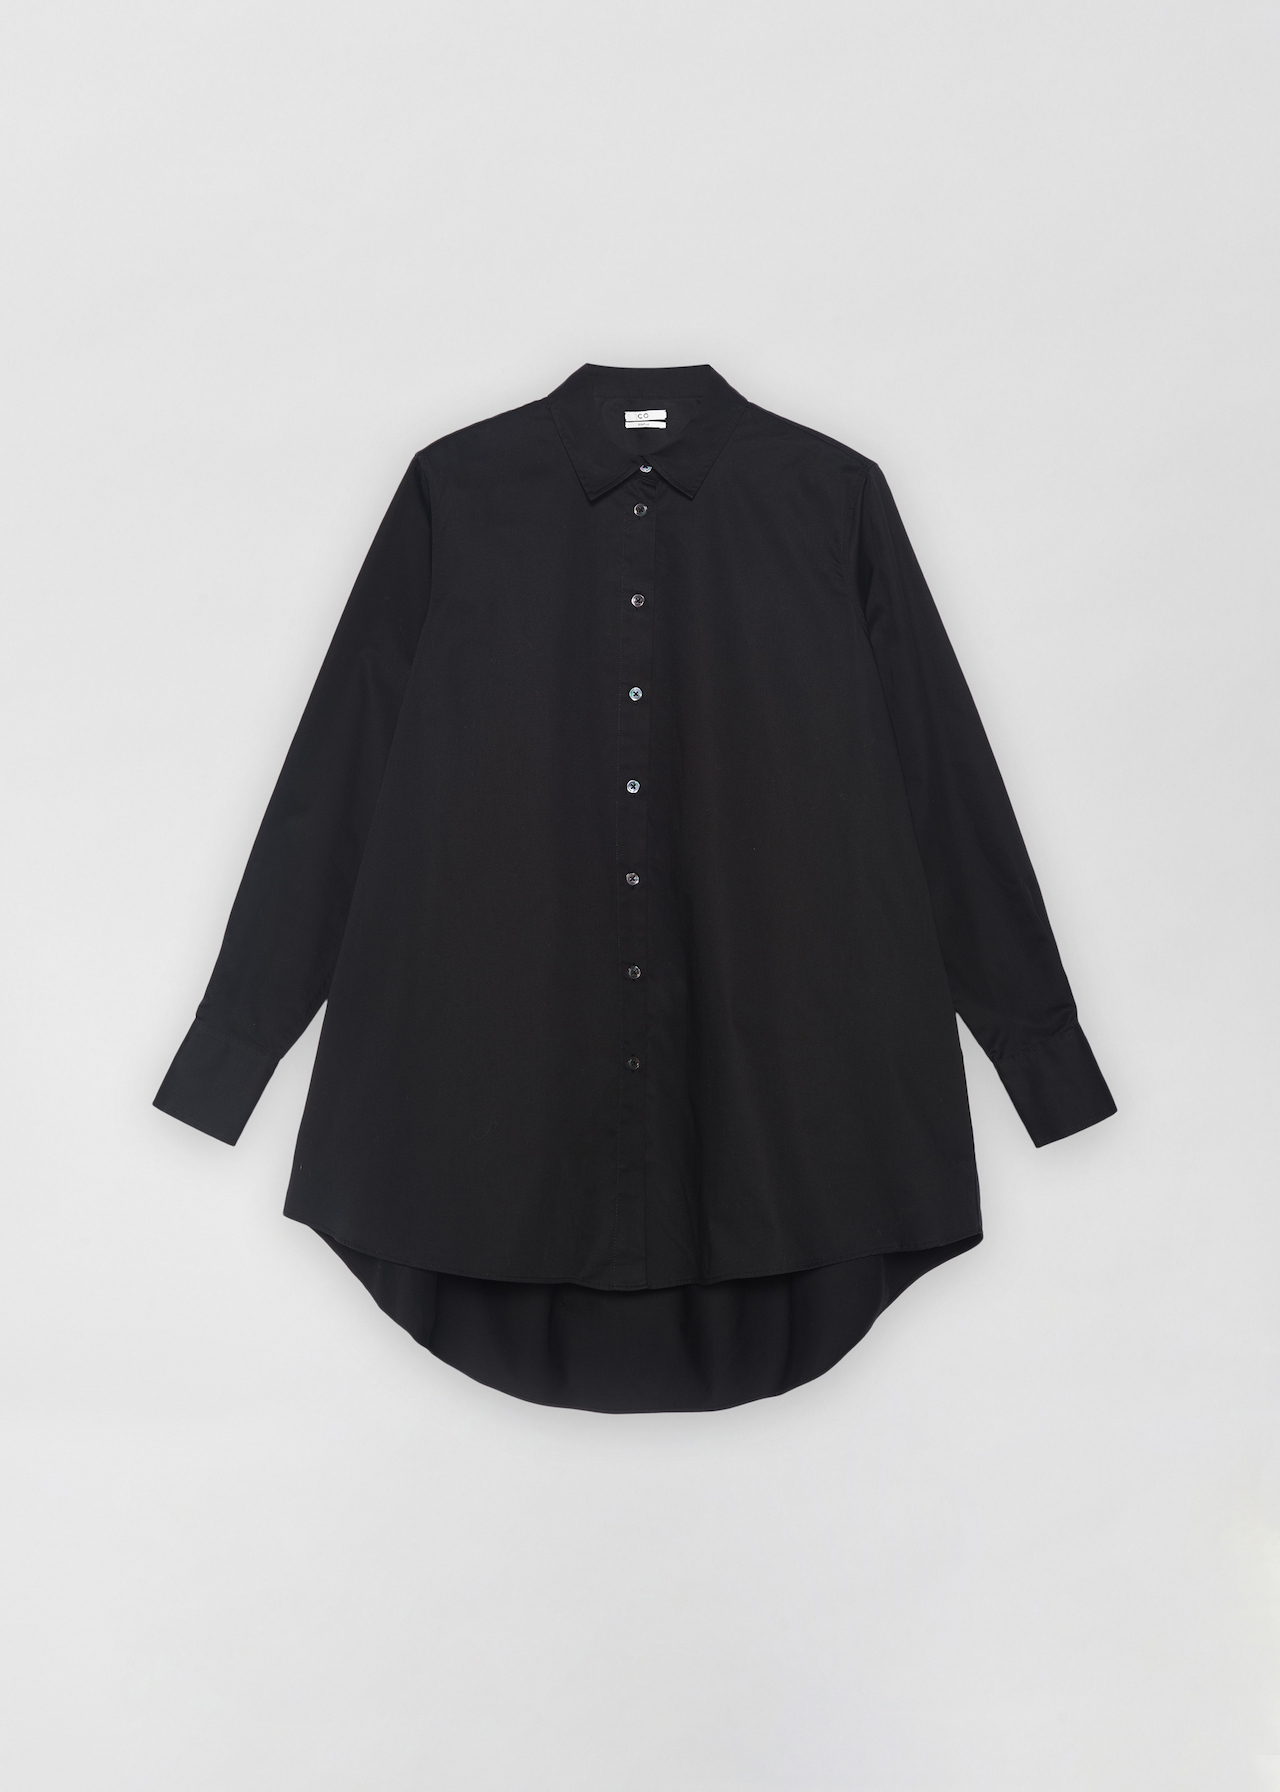 A-Line Button Down Shirt - White in Black by Co Collections